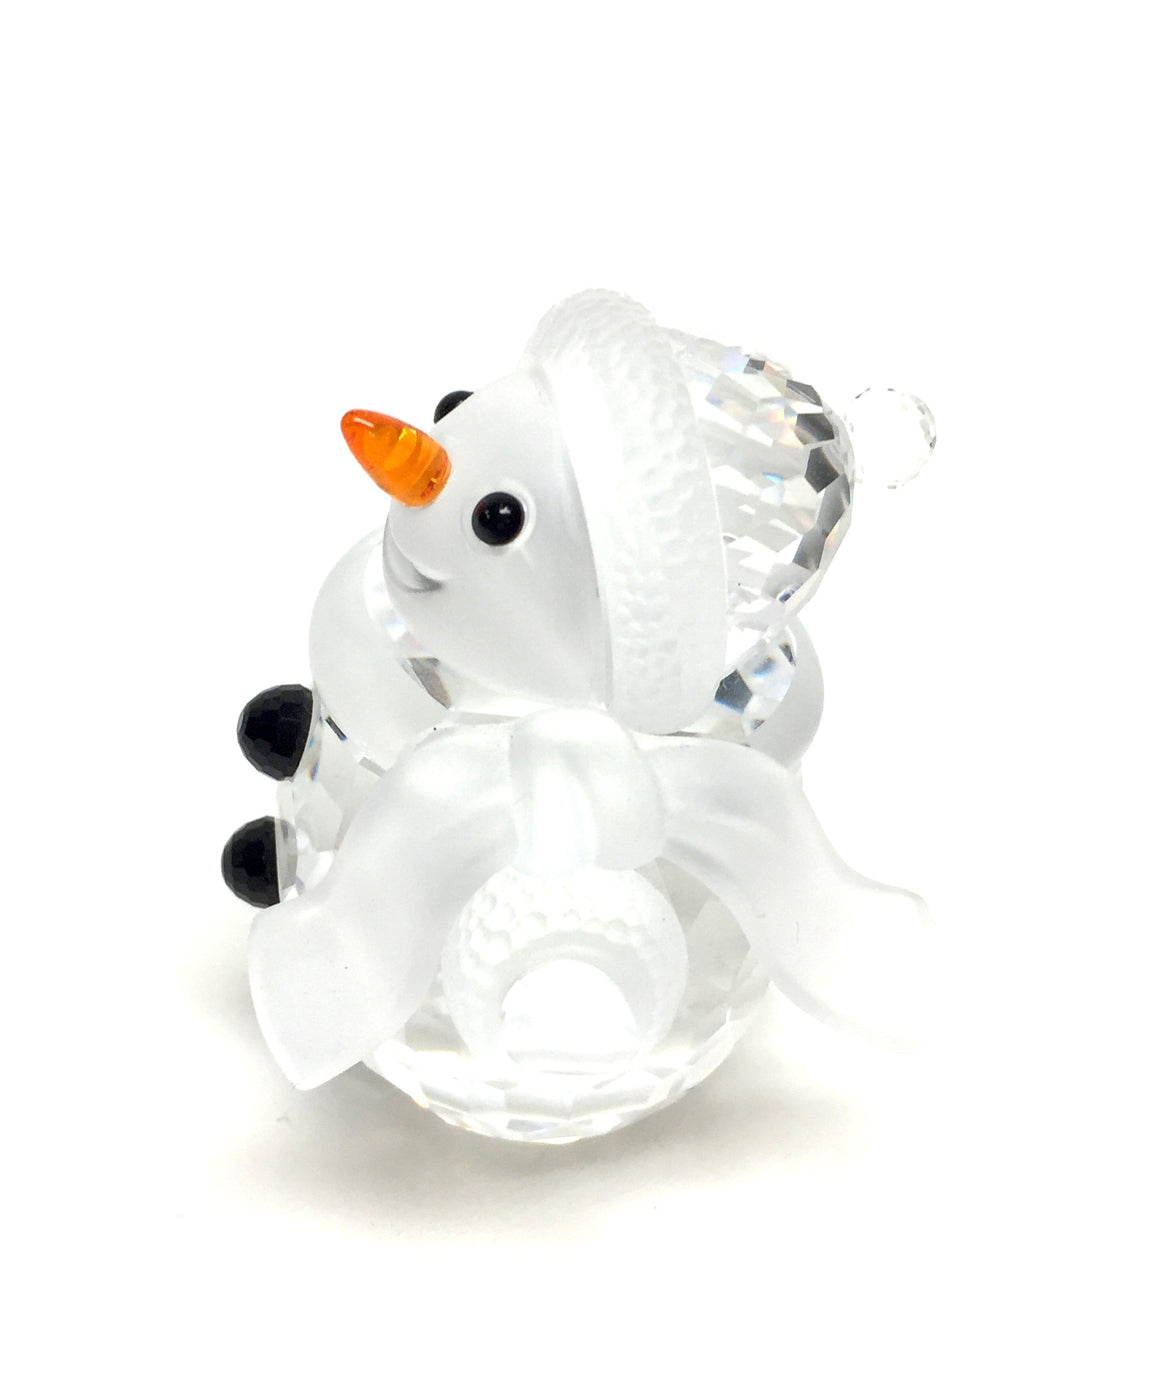 SWAROVSKI New Smiling SNOWMAN Crystal Figurine